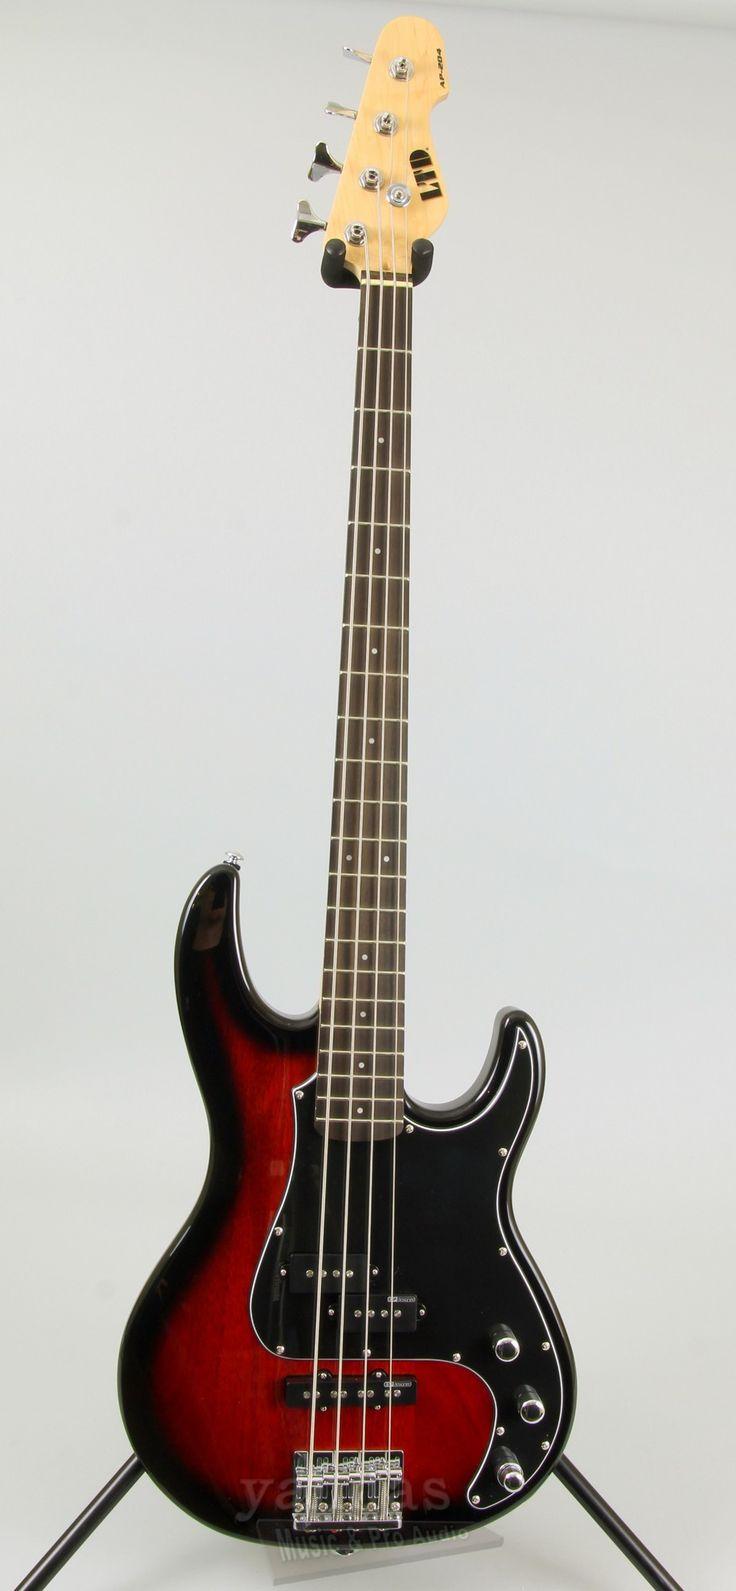 1000 images about guitars basses on pinterest gretsch 1960s and yamaha guitars. Black Bedroom Furniture Sets. Home Design Ideas